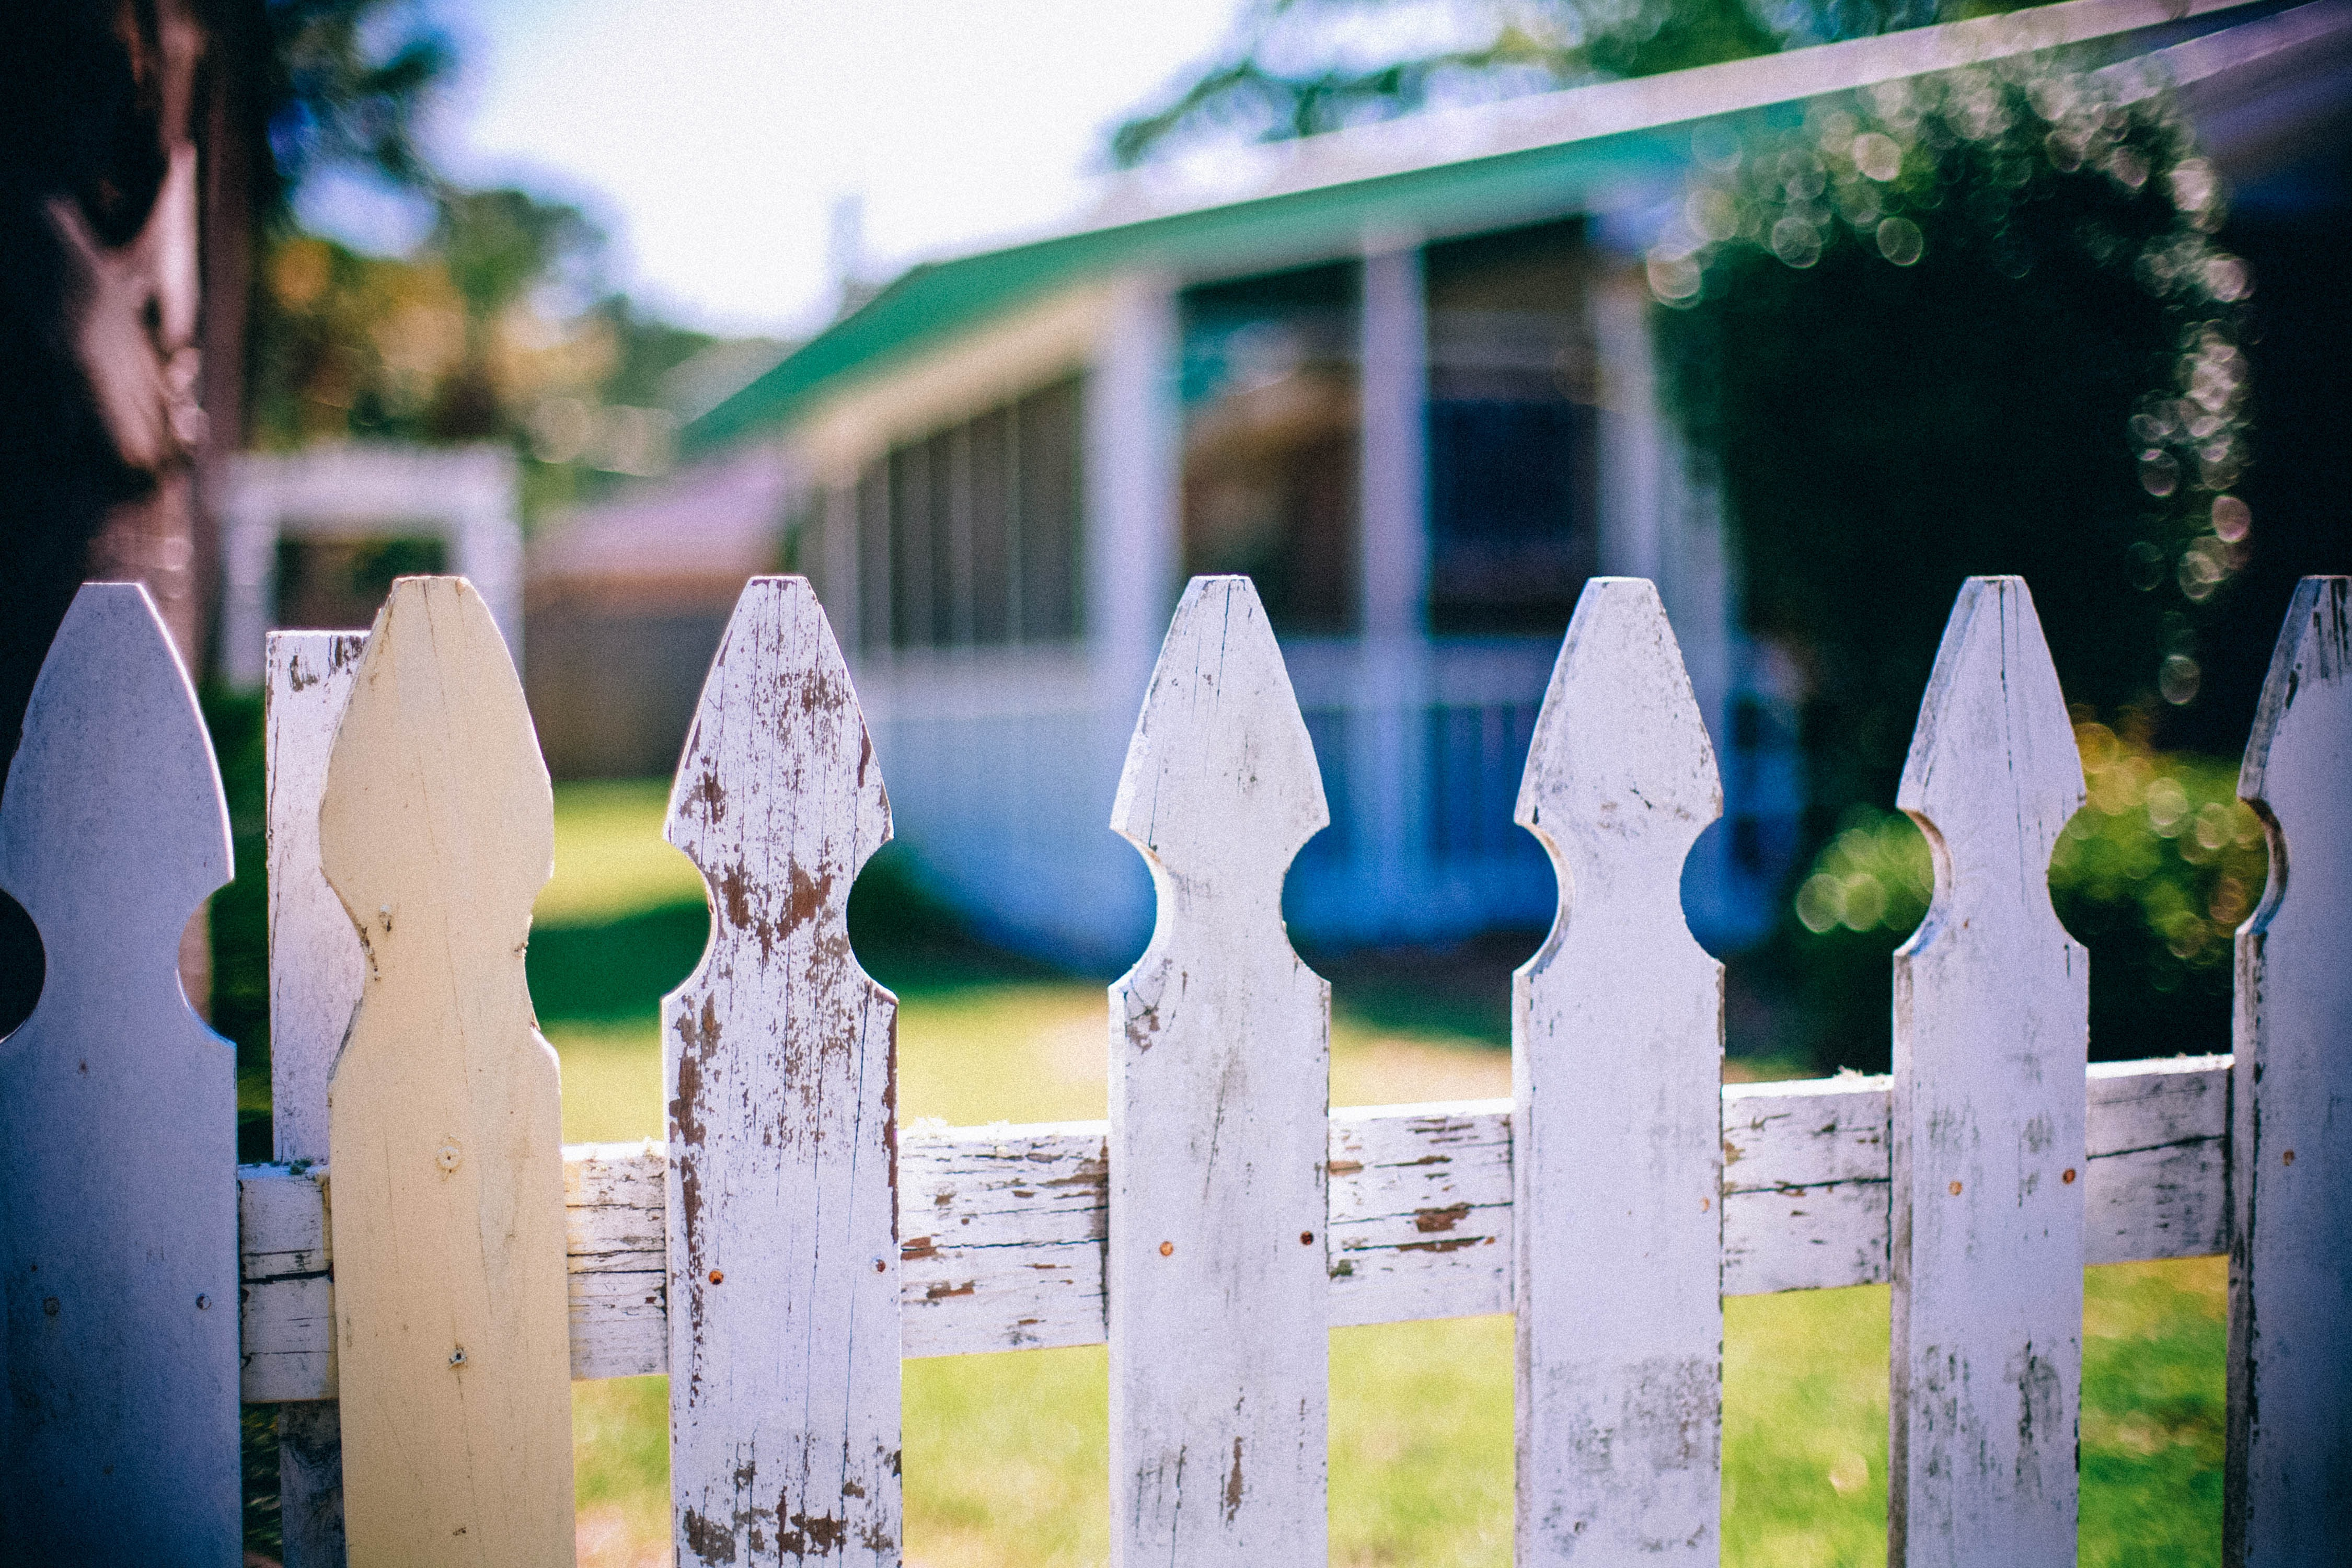 worn white picket fence with white and green home in background